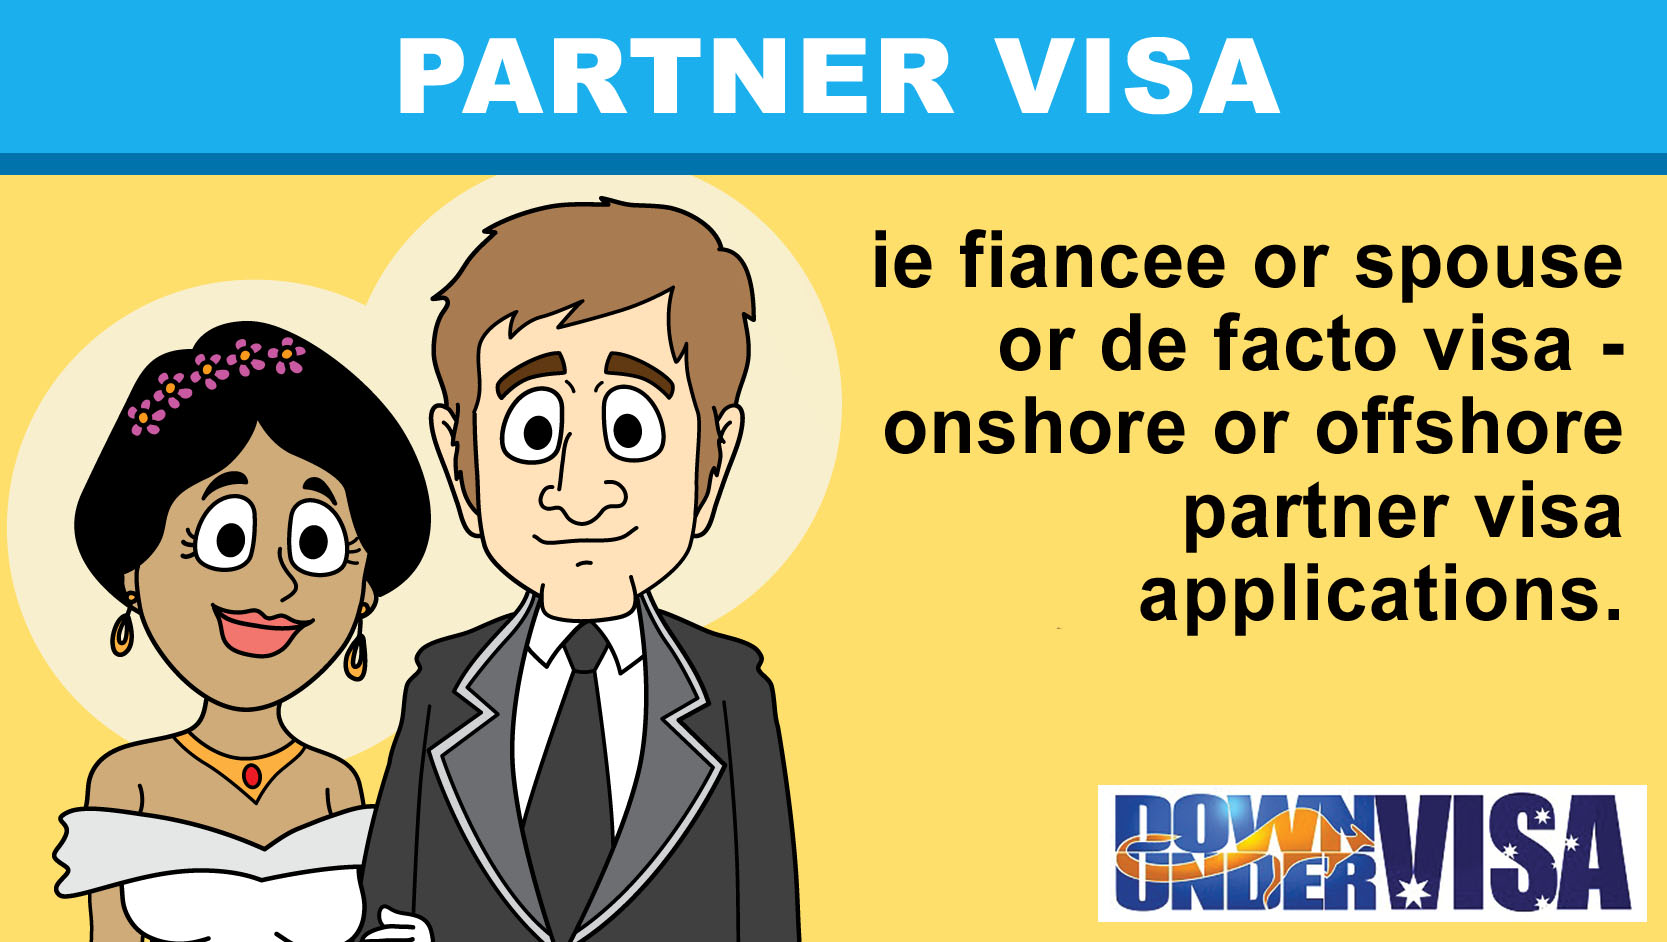 partner visa changes 17 april 2019